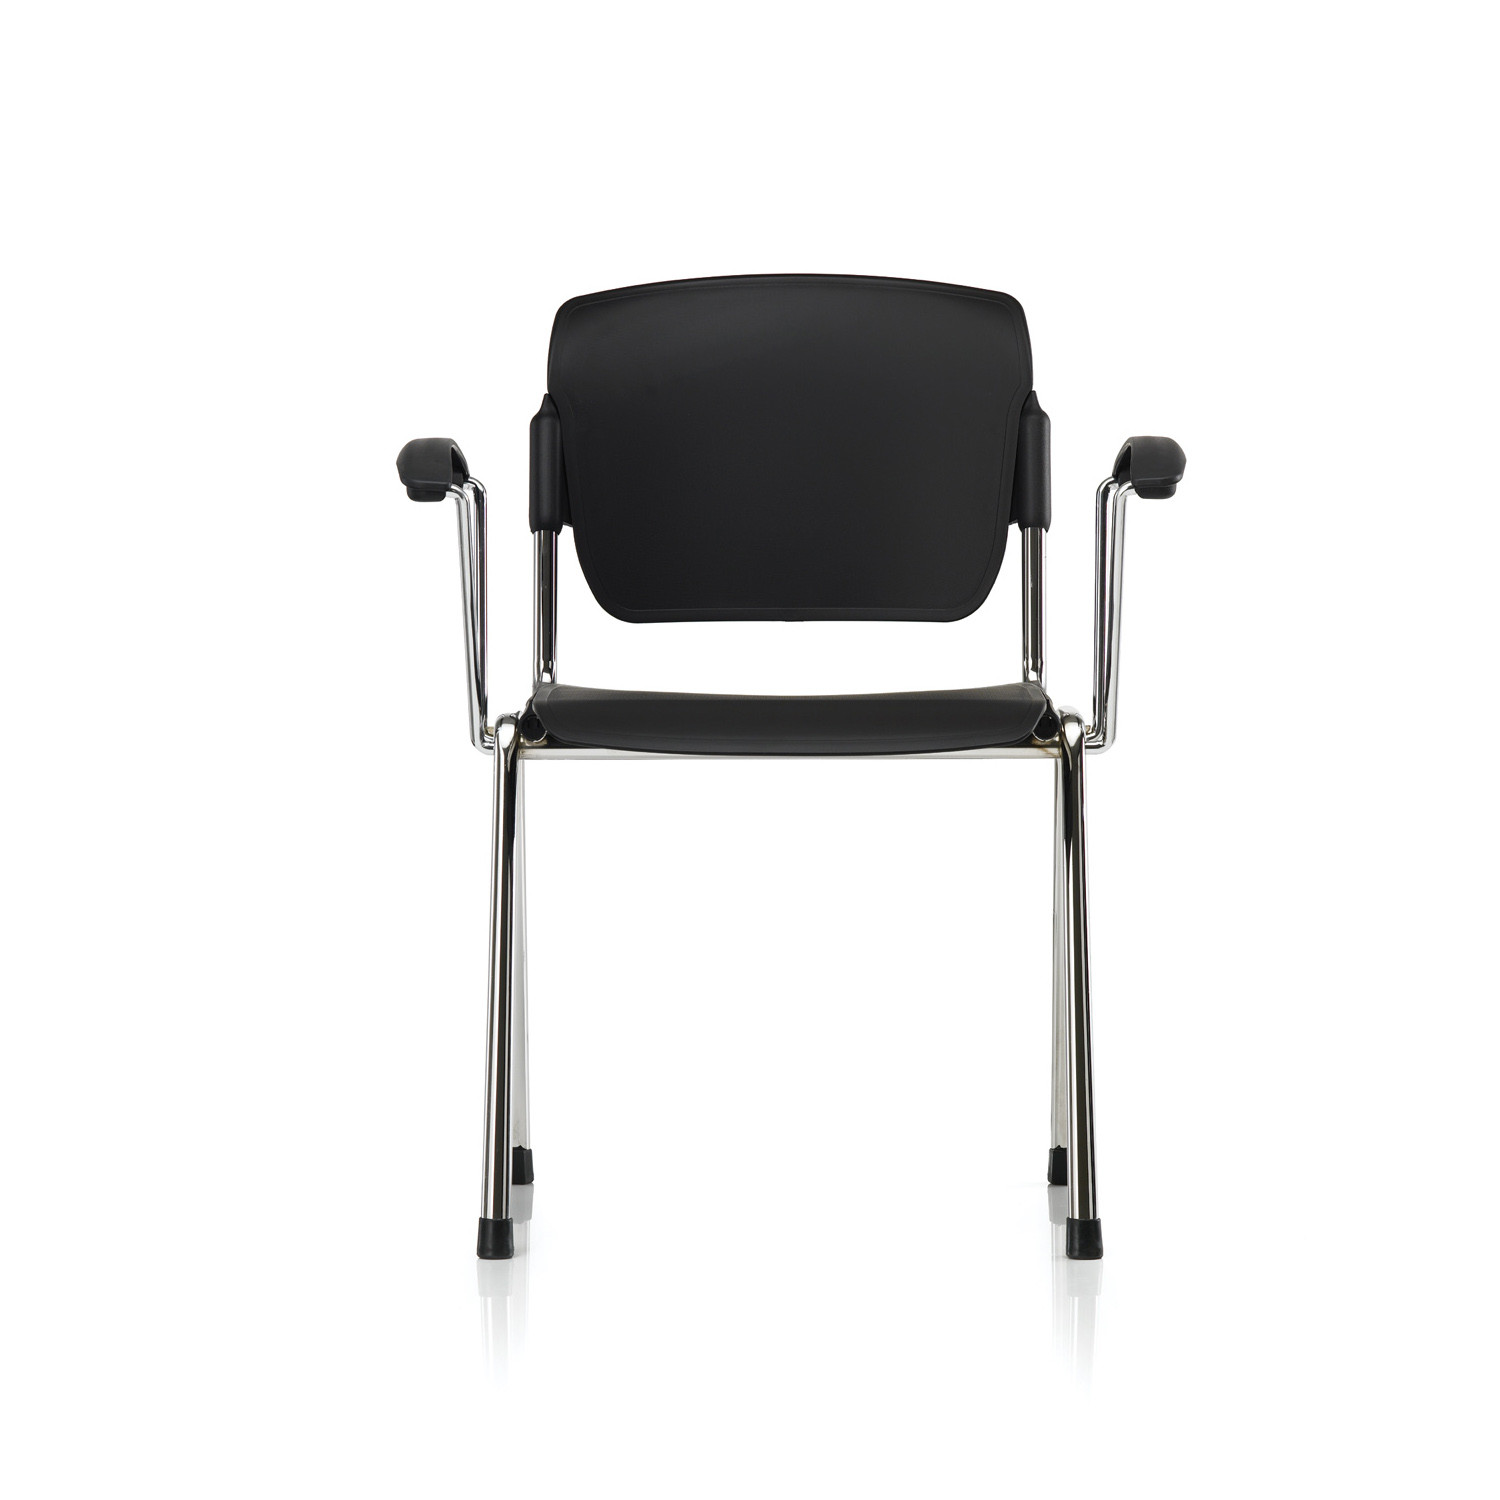 Series 8000 Stacking Chair